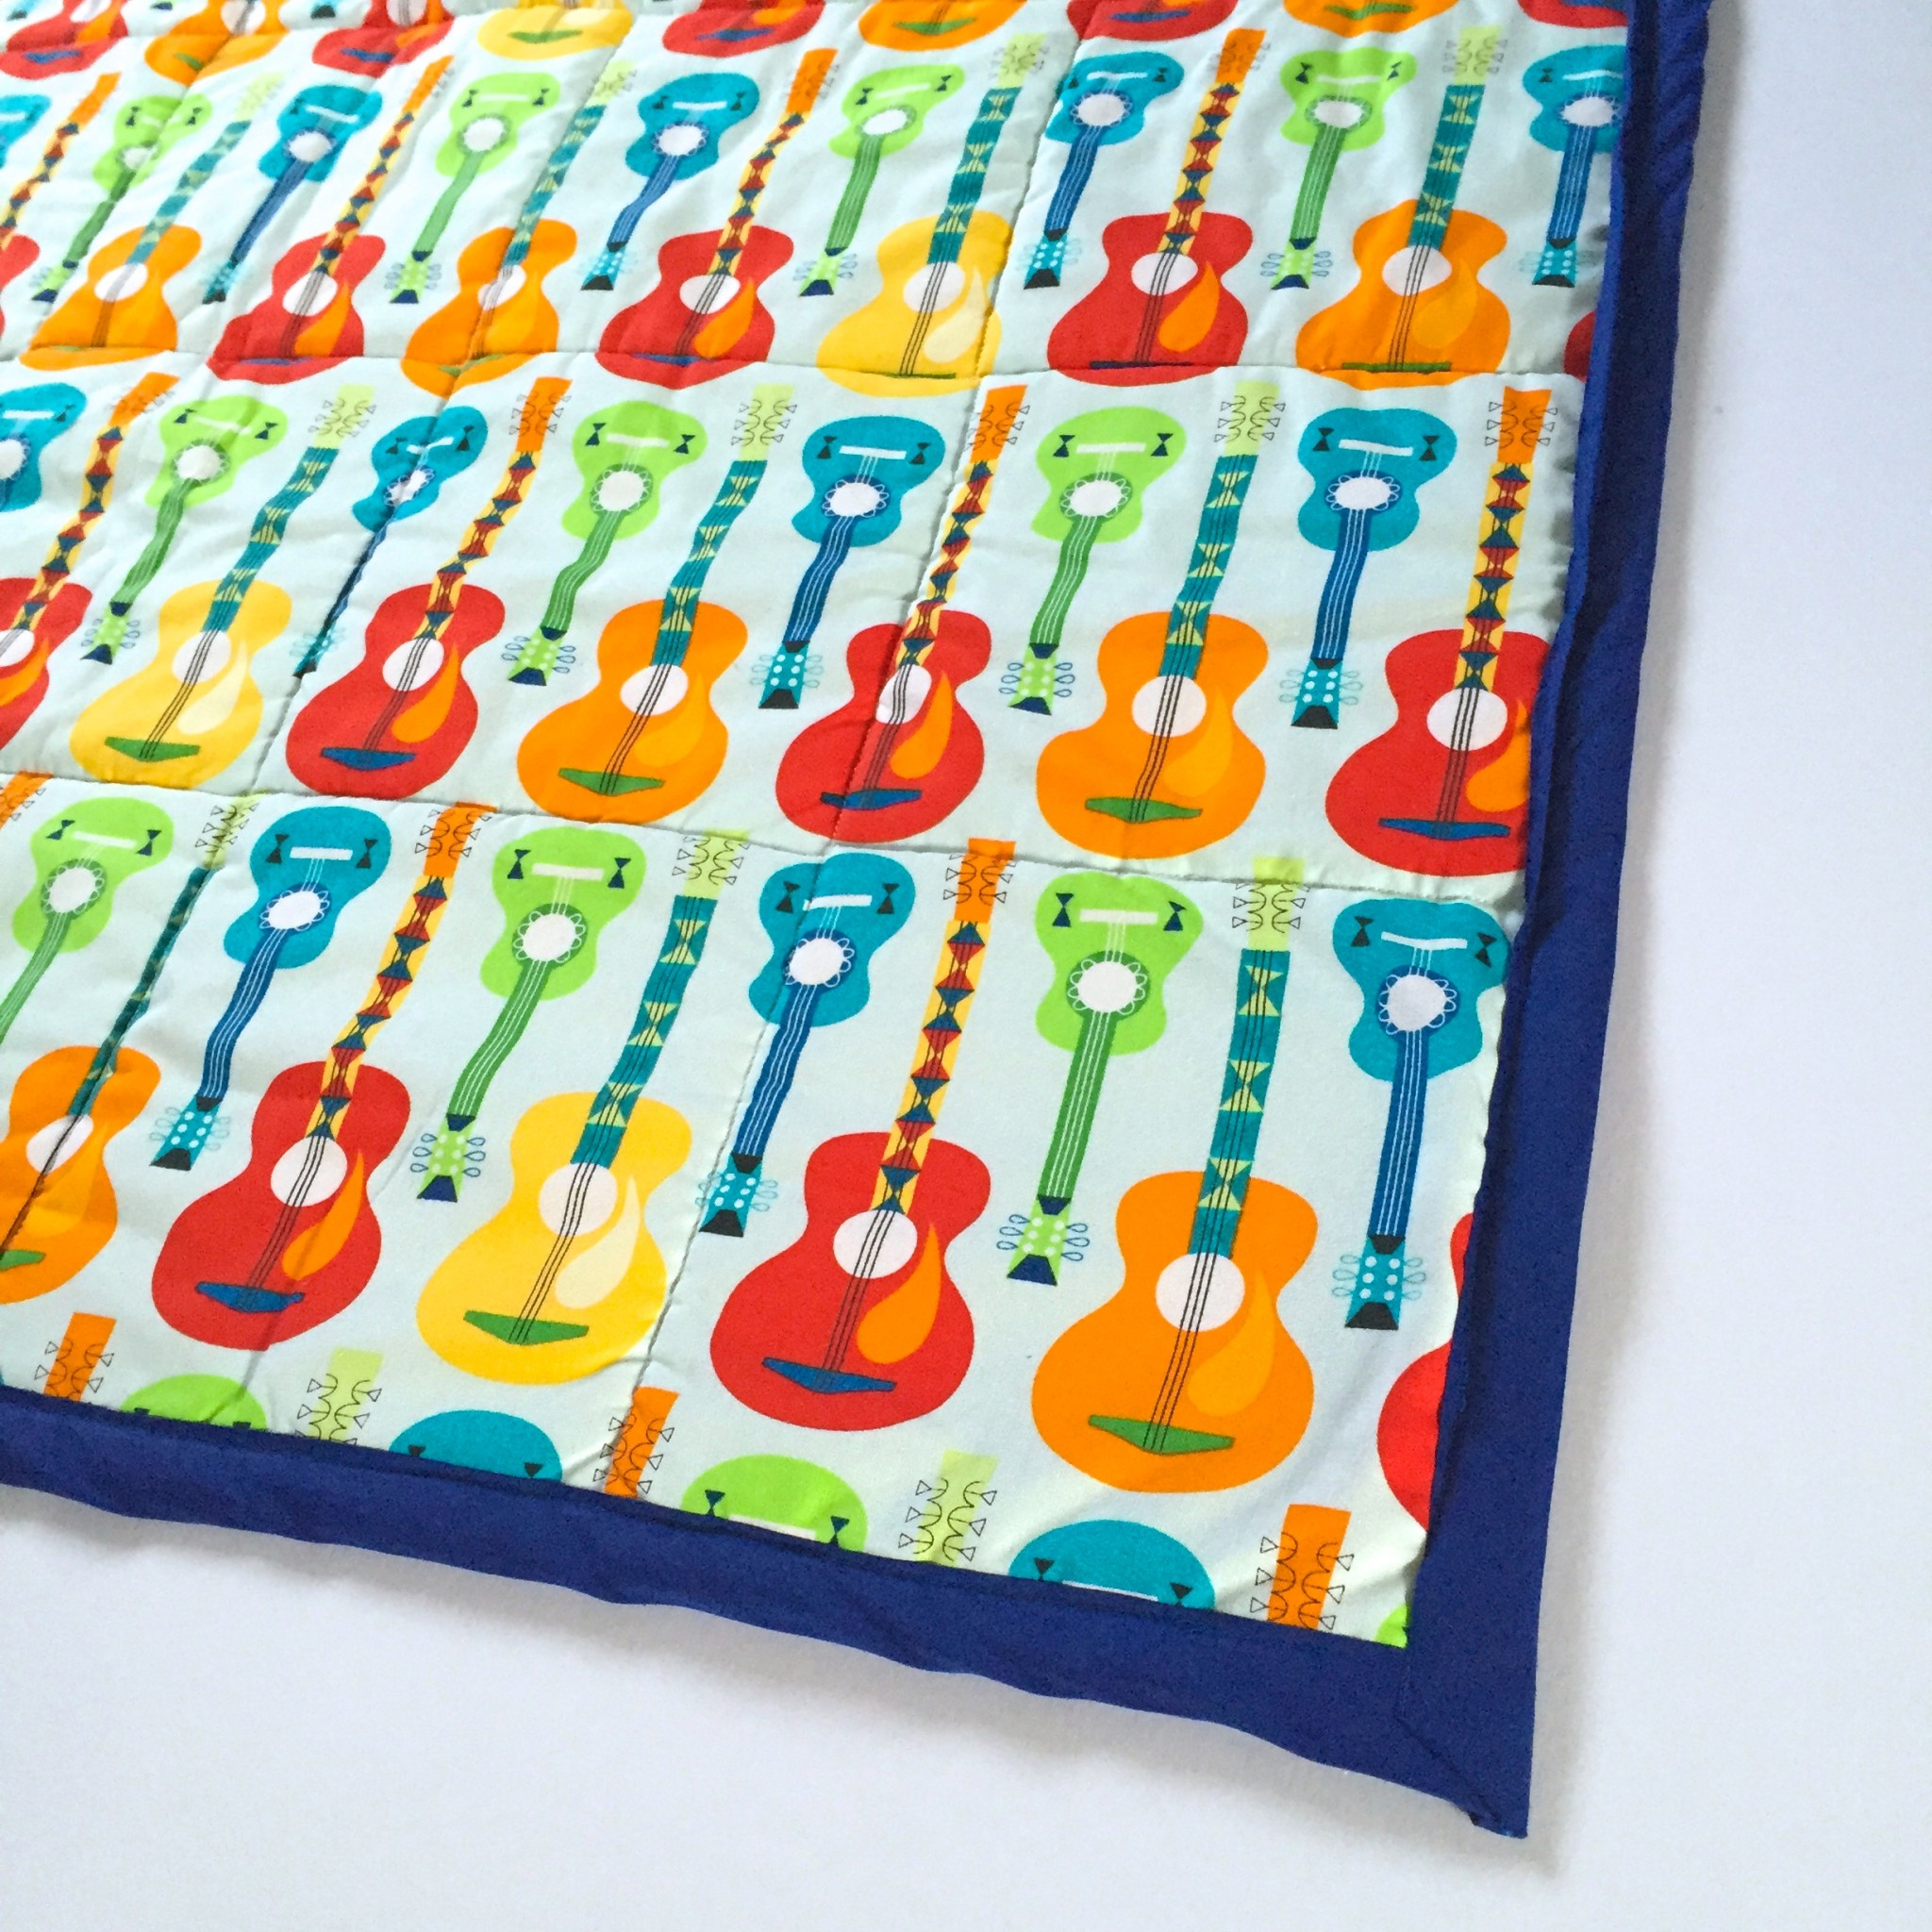 Guitar quilt backing